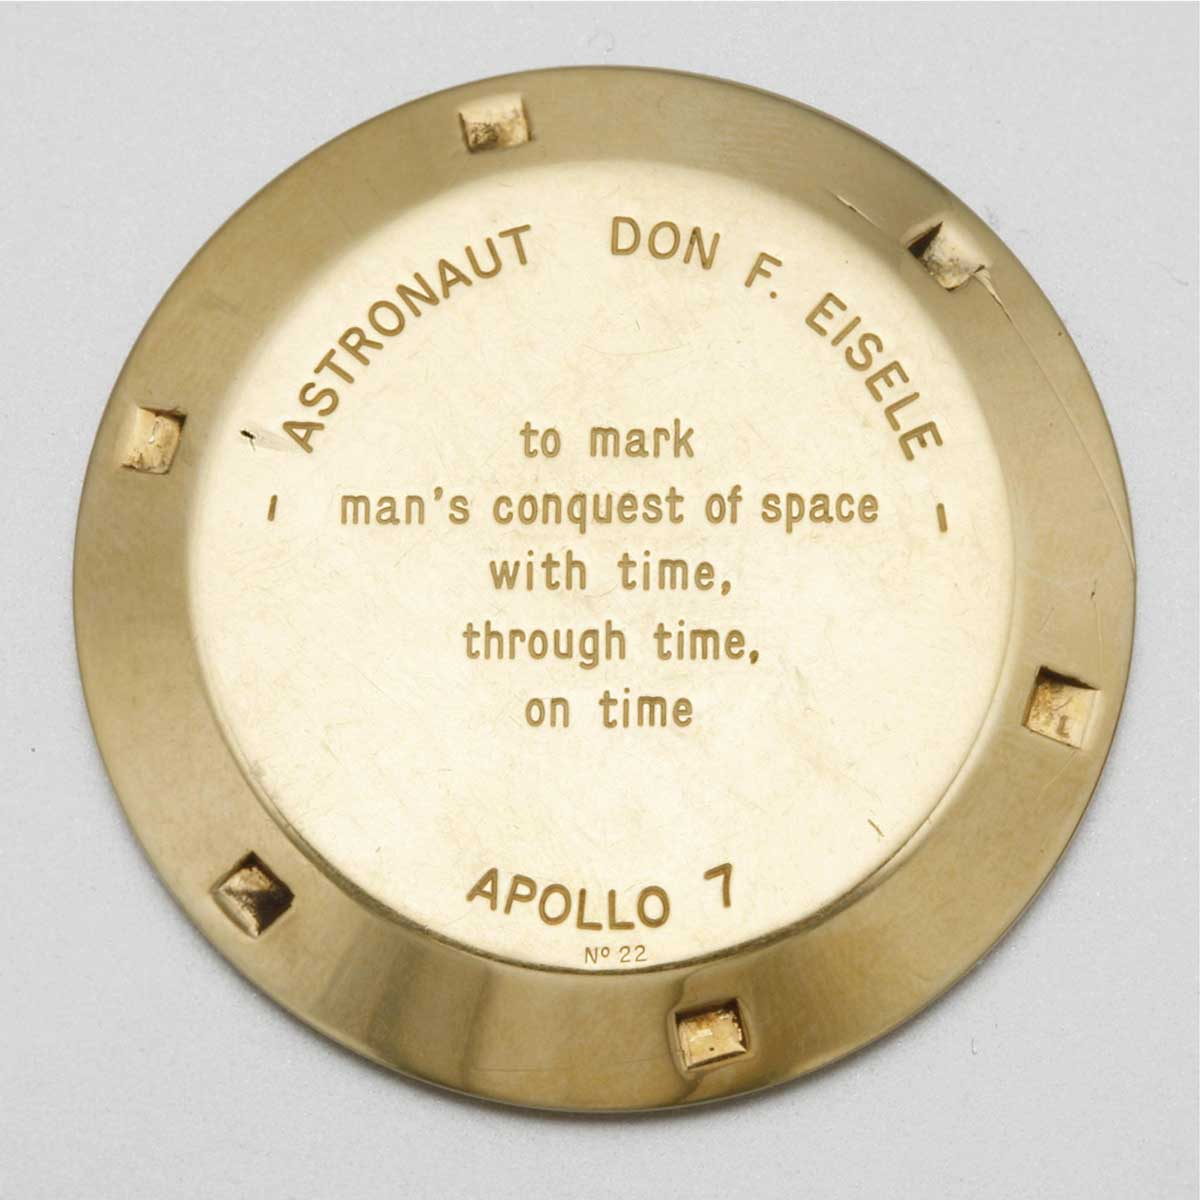 """The examples of the Speedmaster BA 145.022 that were gifted to relevant individuals, were inscribed with the lines, """"to mark man's conquest of space with time, through time, on time"""" (Image: sothebys.com)"""